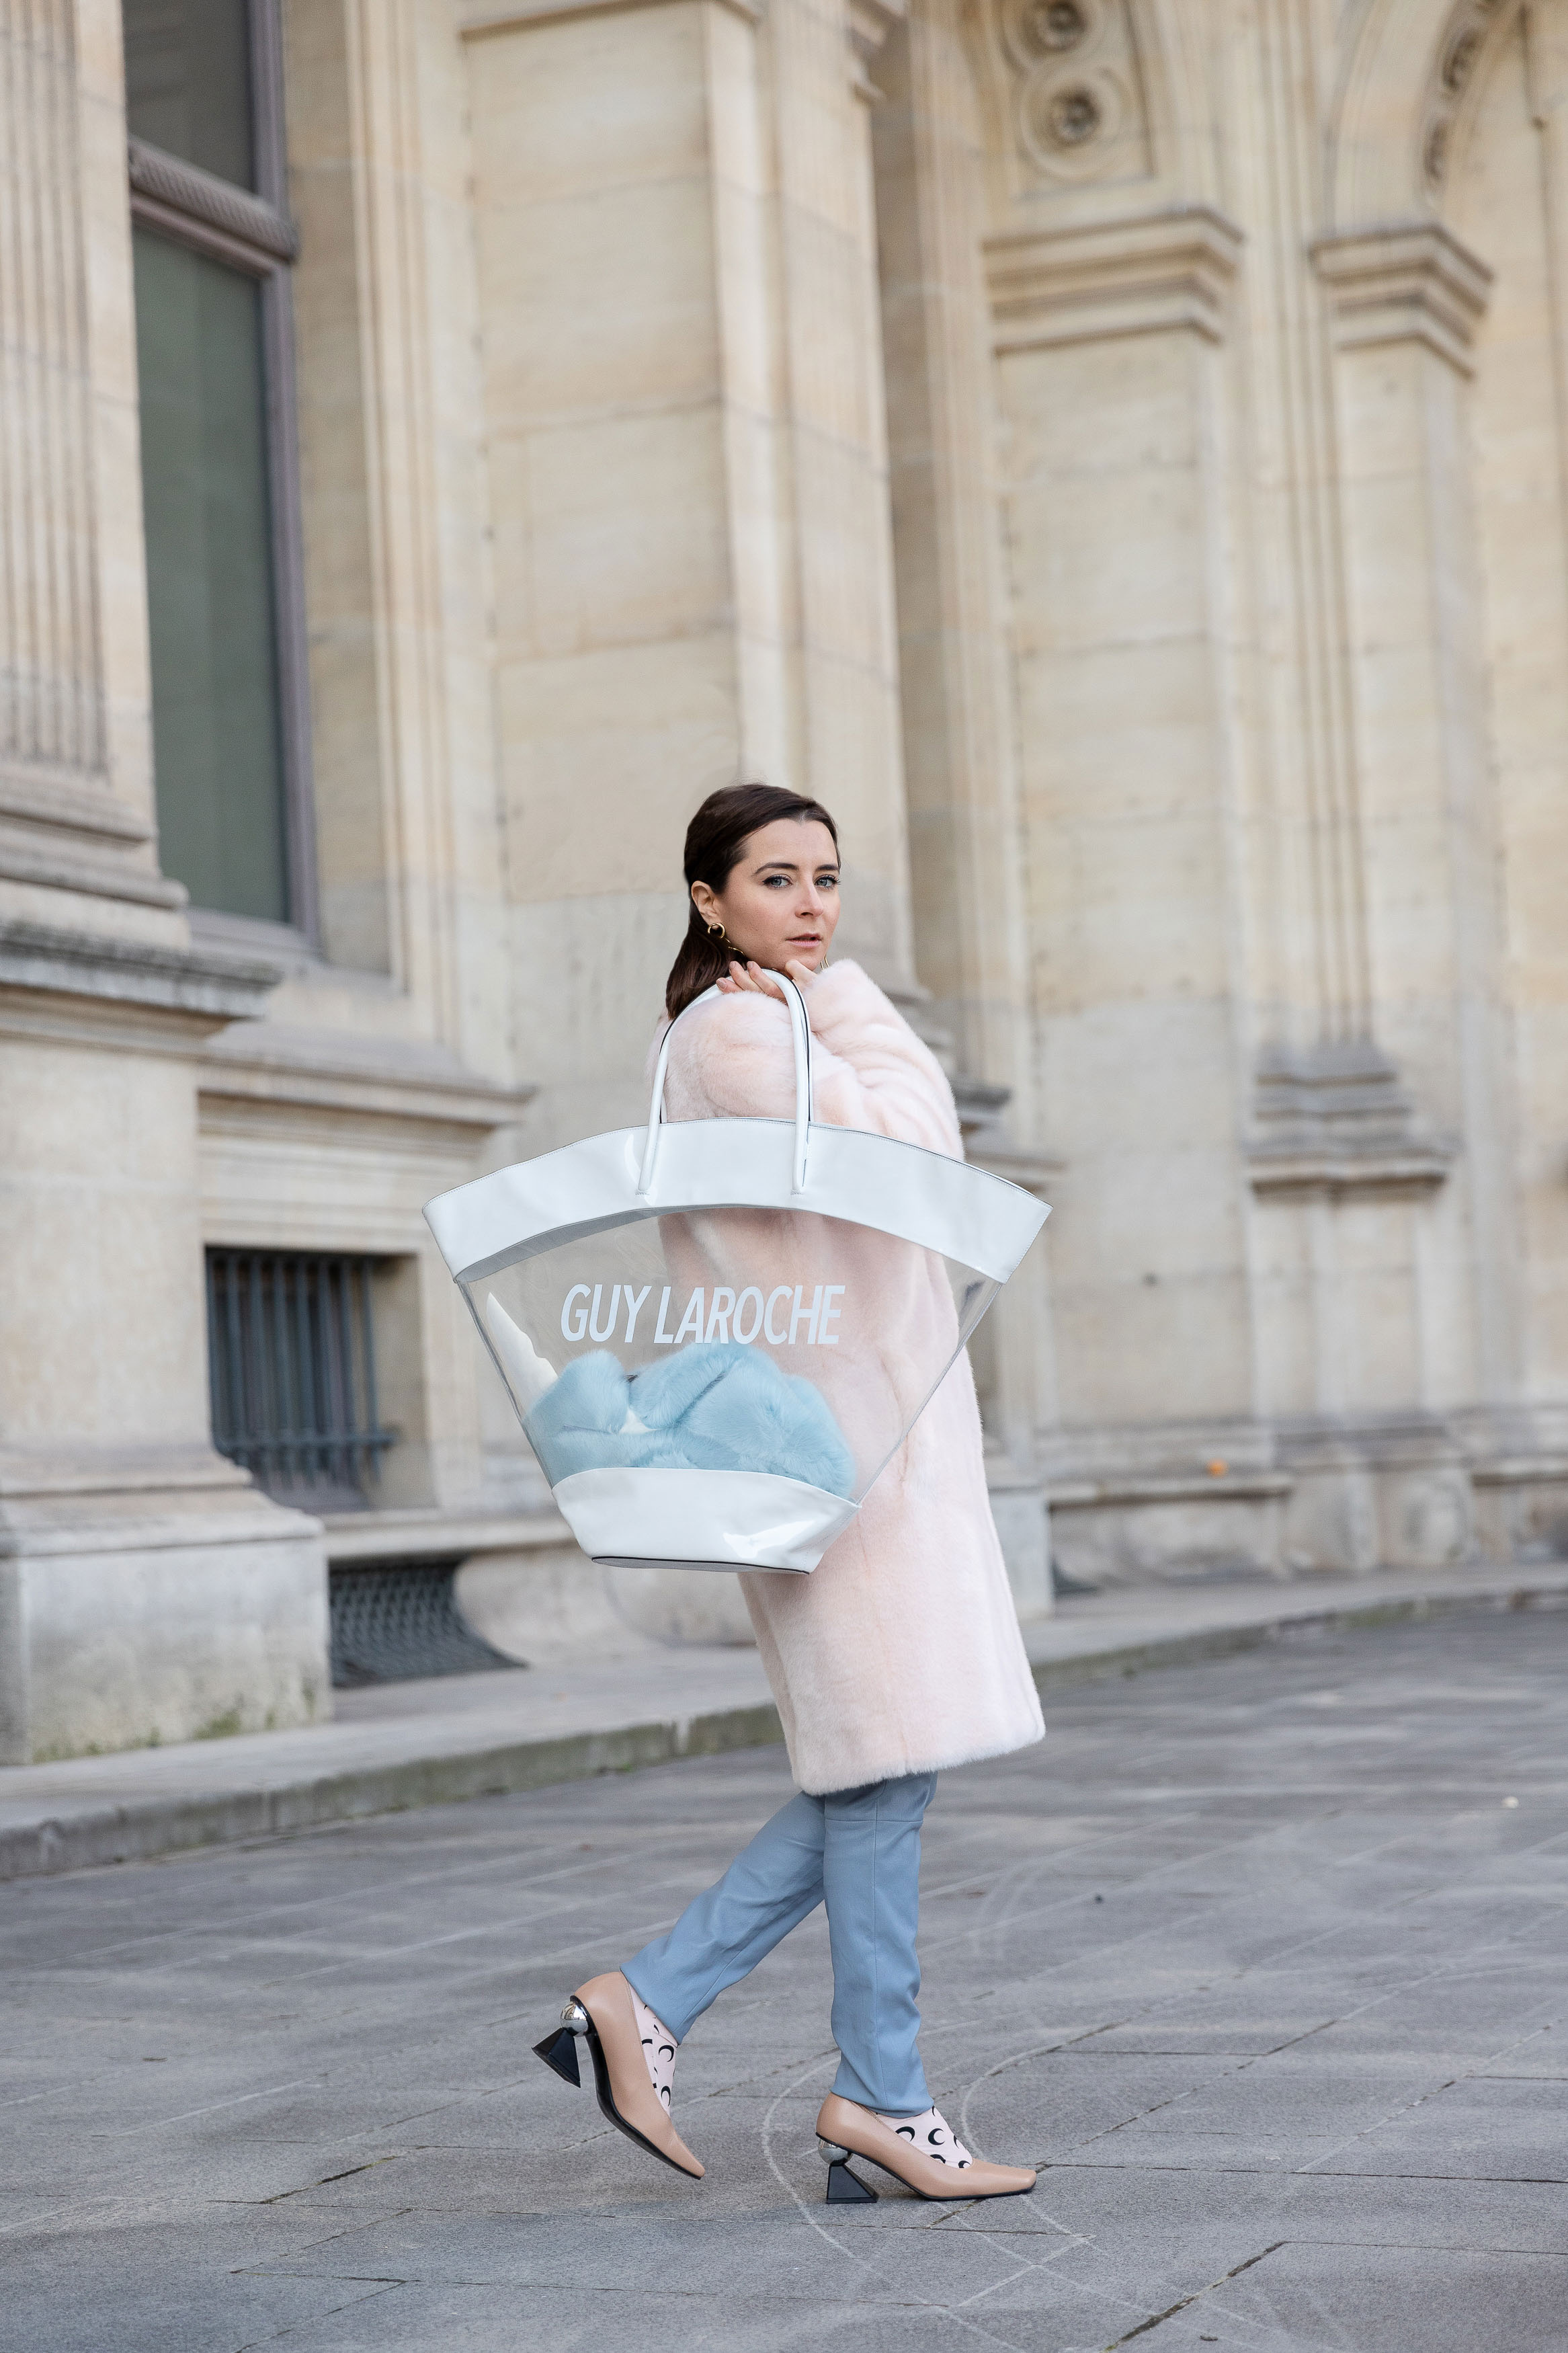 91916cdc62e8 Guy Laroche Best Street Style Paris Fashion Week Mars 2019 Julia Comil /  French Fashion Blogger ...